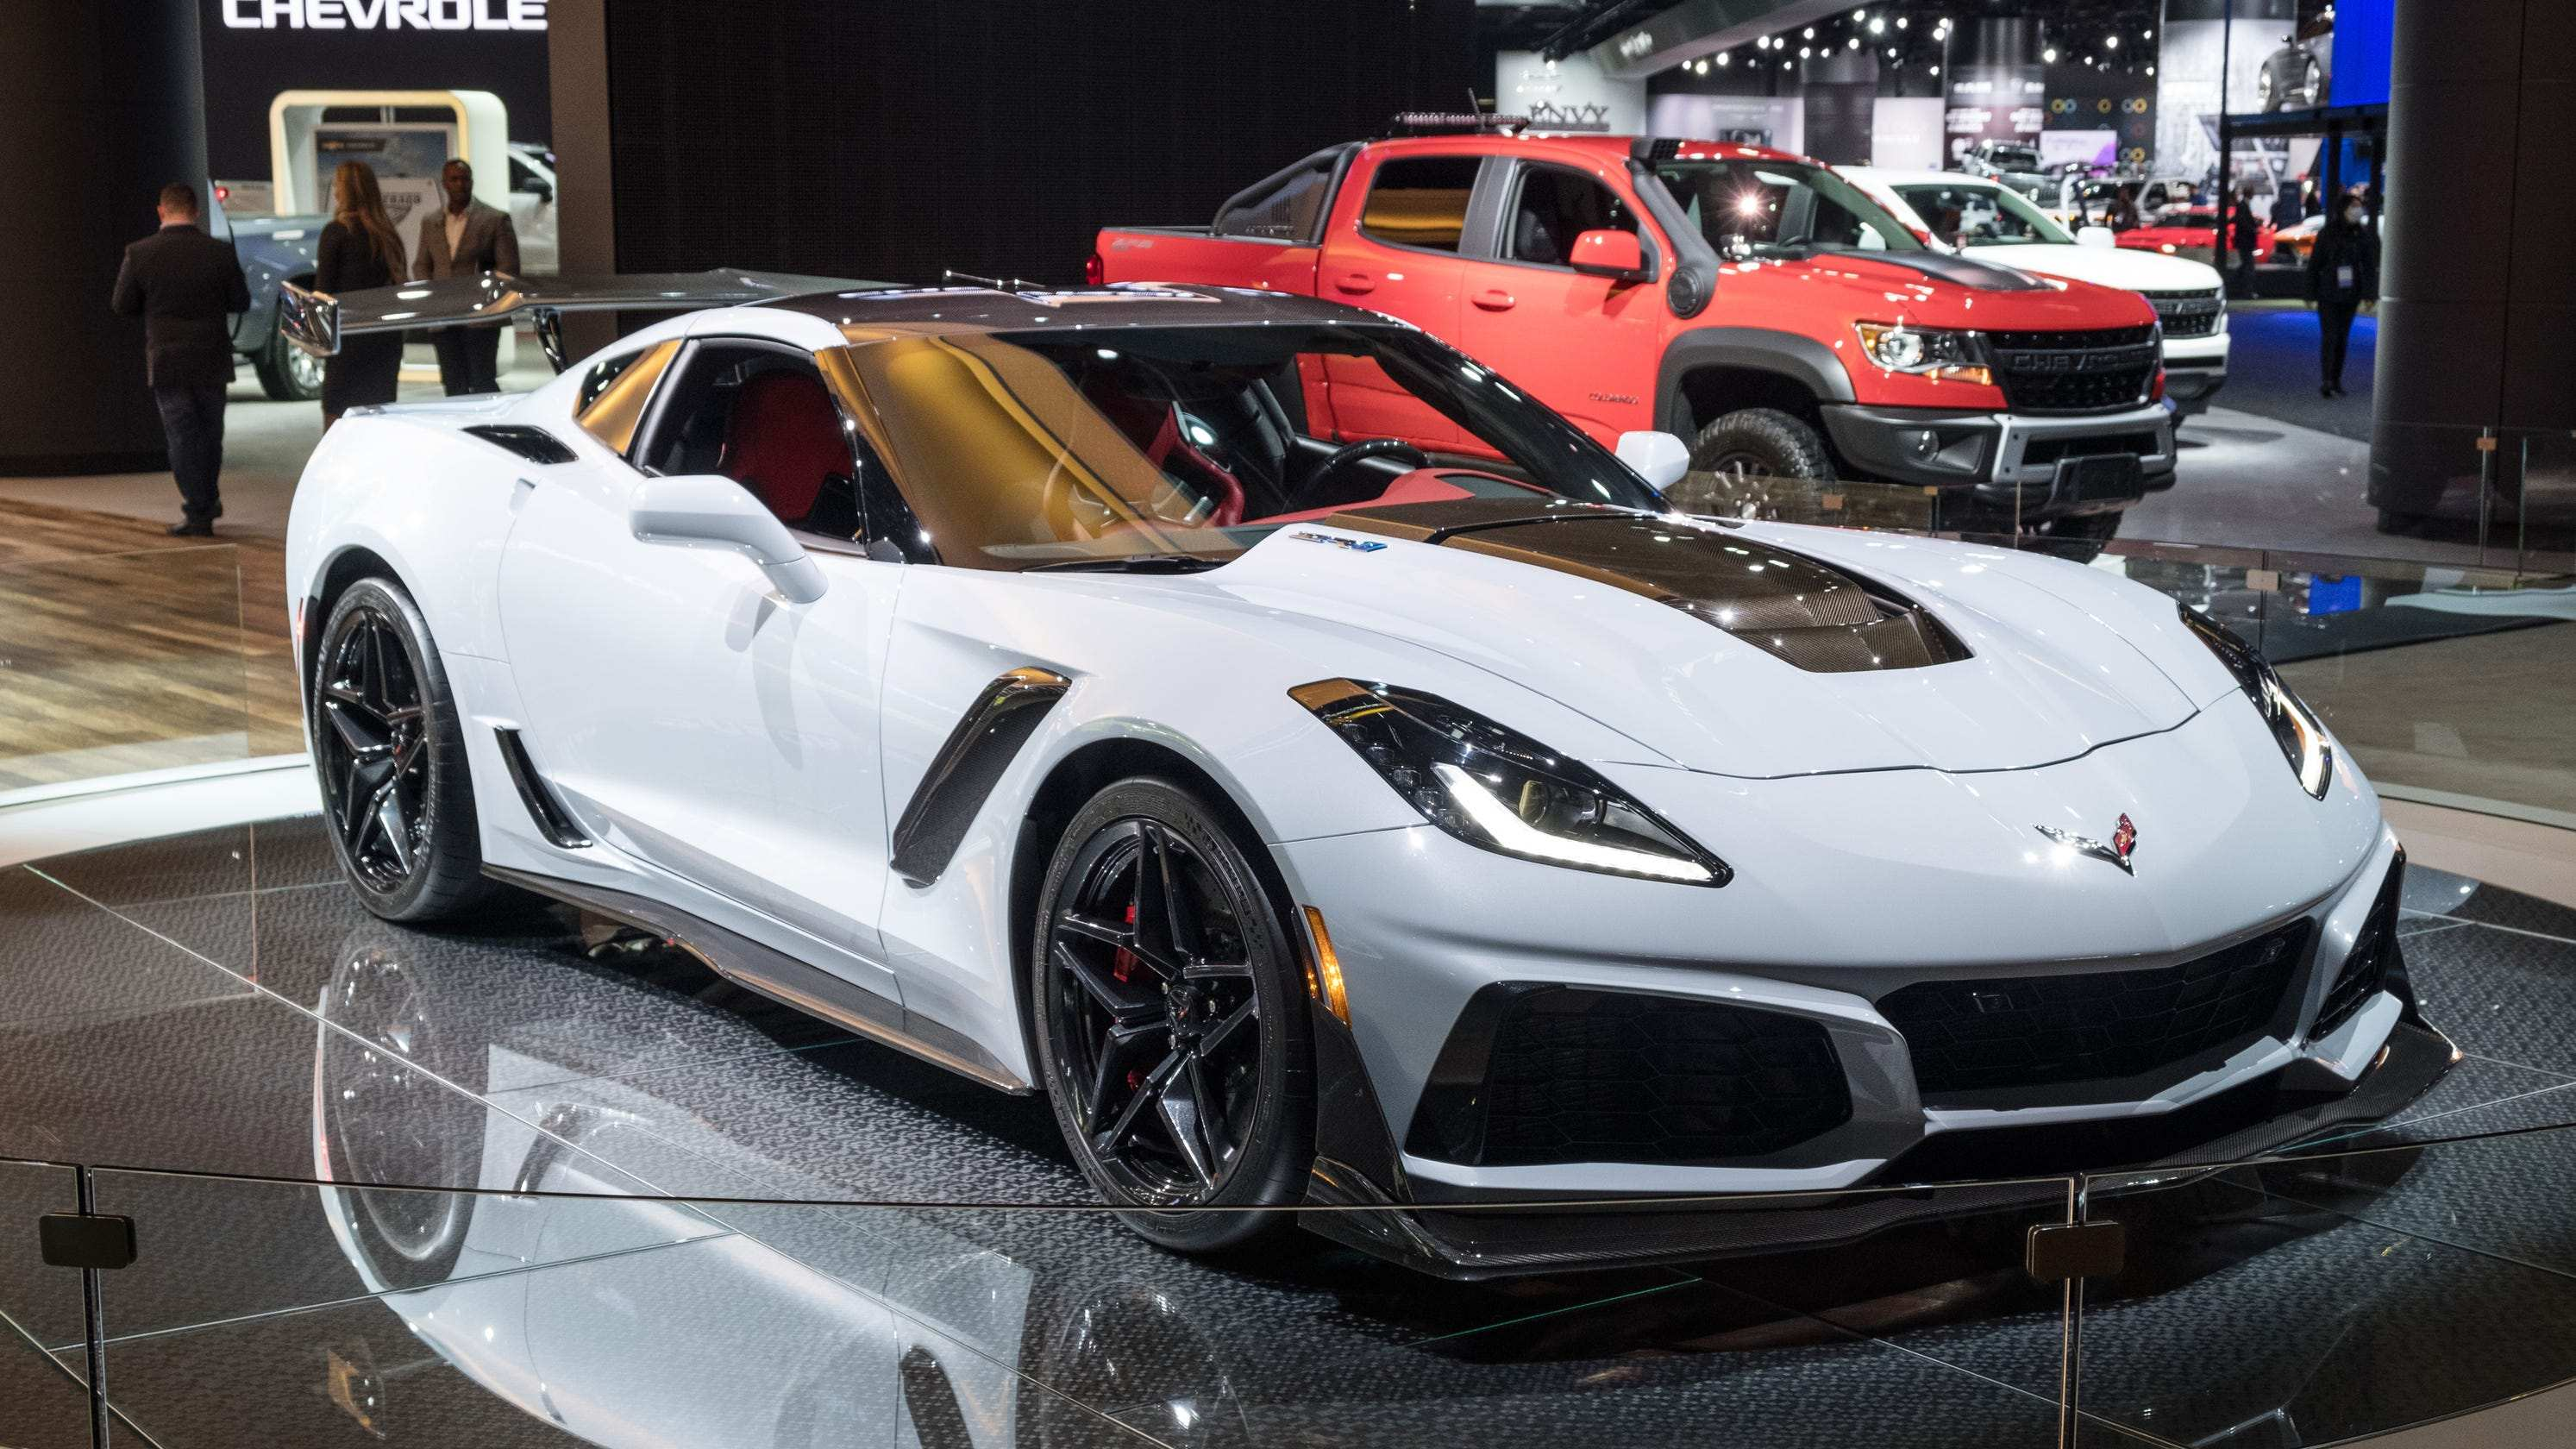 72 Concept of 2020 Chevrolet Corvette Zr1 Prices by 2020 Chevrolet Corvette Zr1